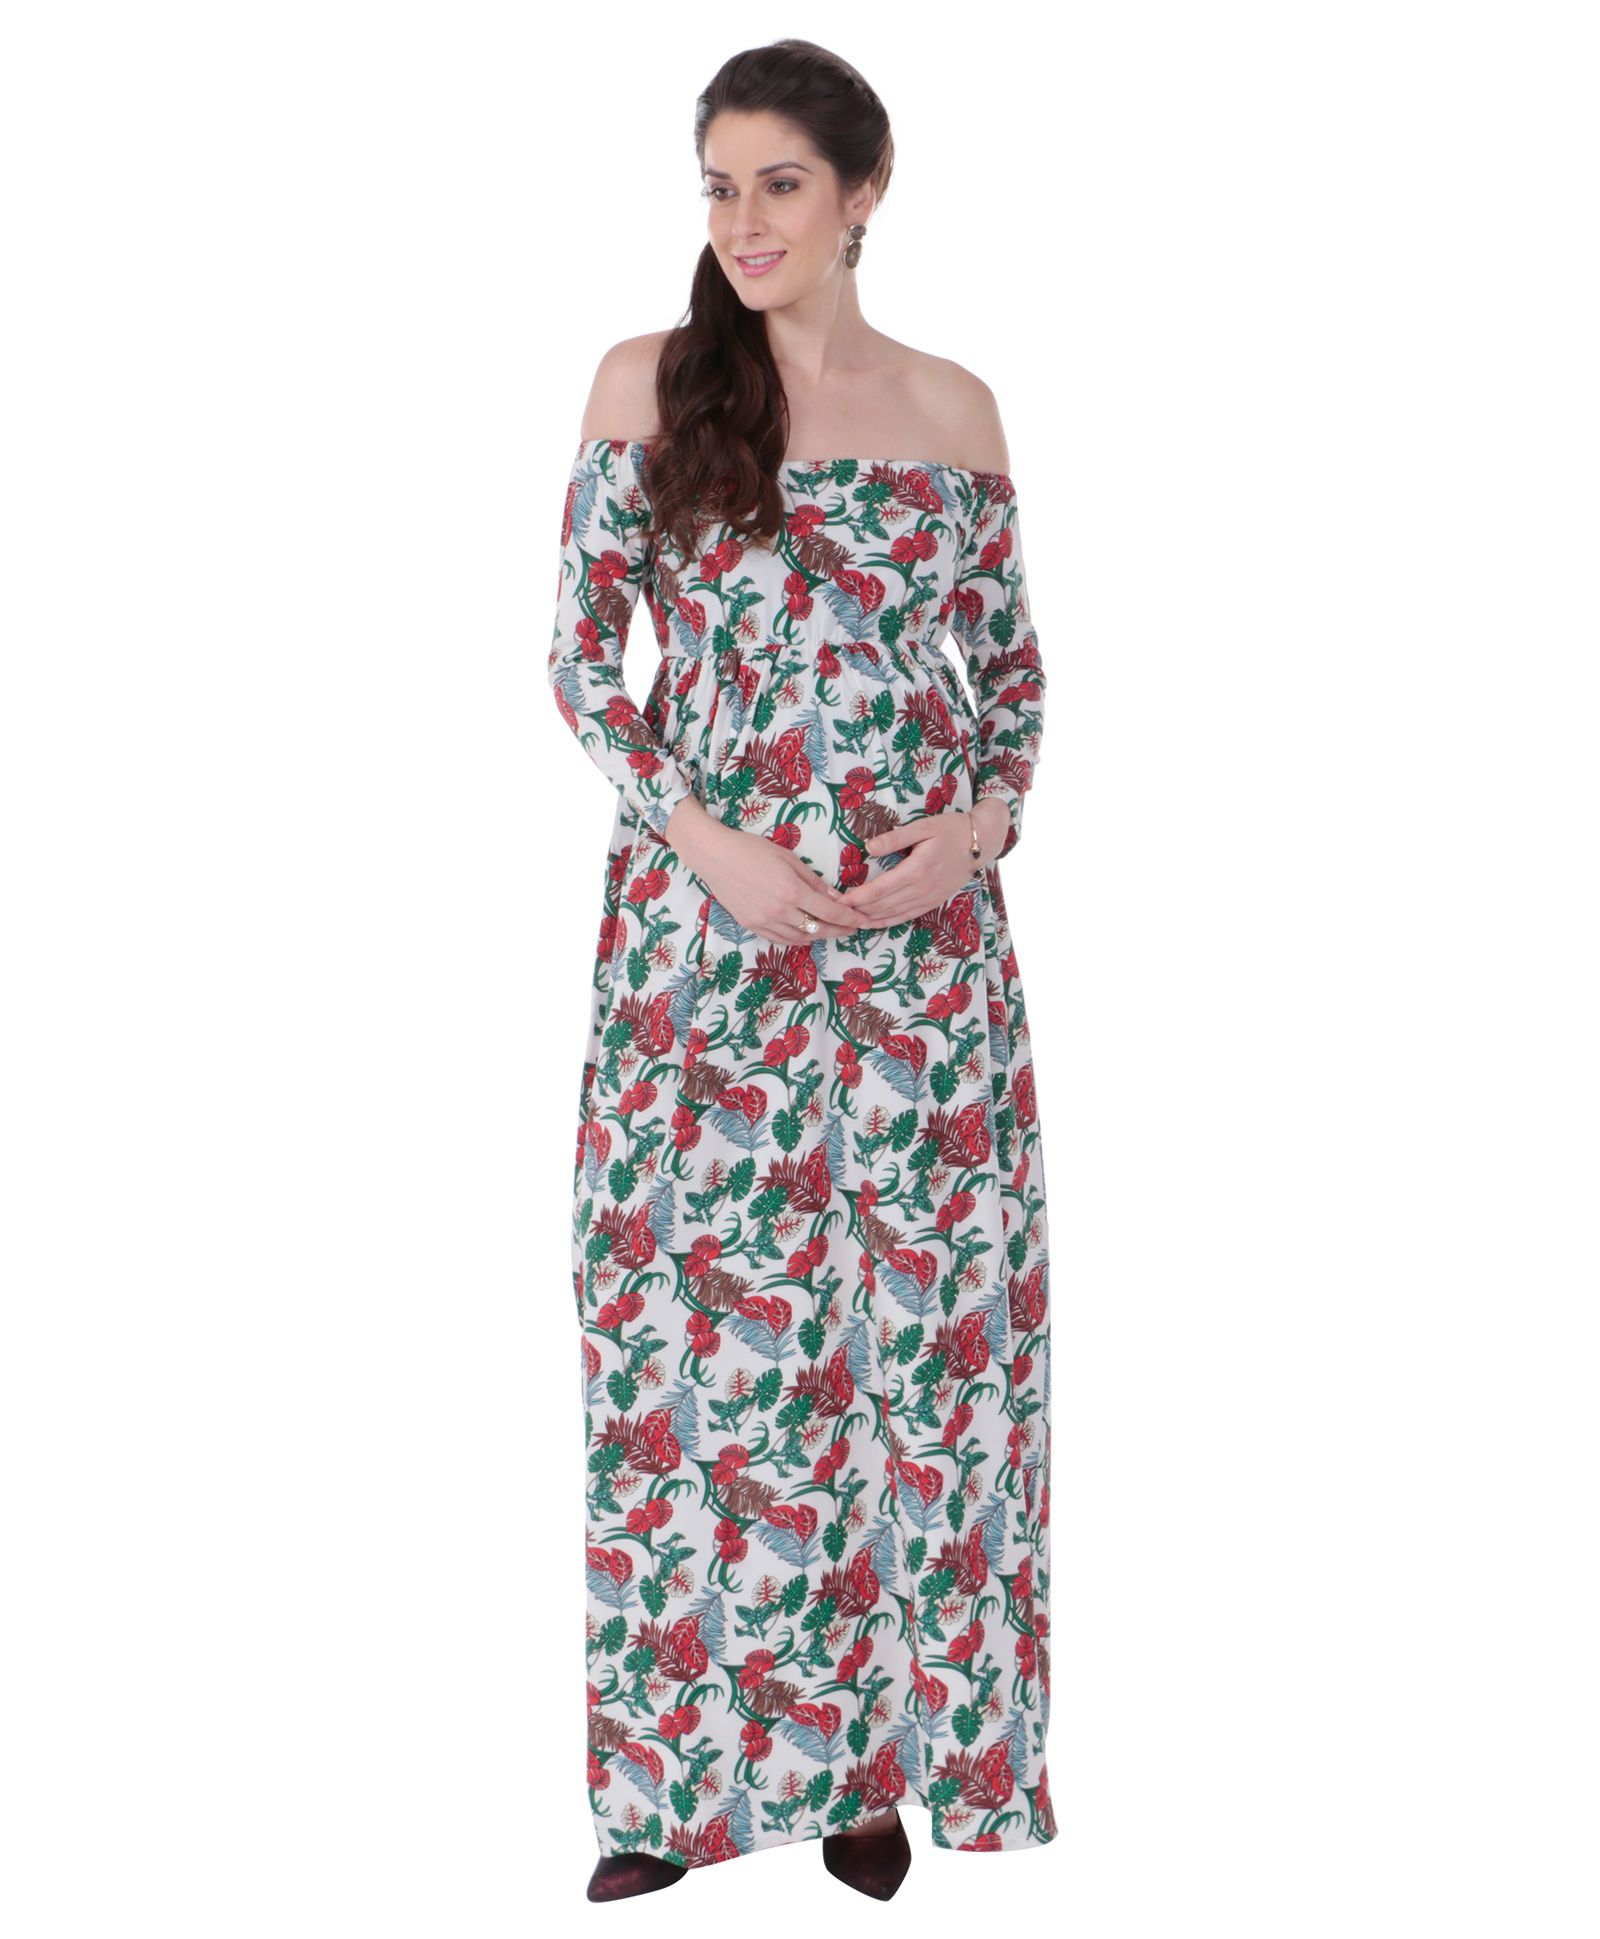 a83fd2ee078 MomToBe Off Shoulder Floral Printed Maternity Dress White Online in ...